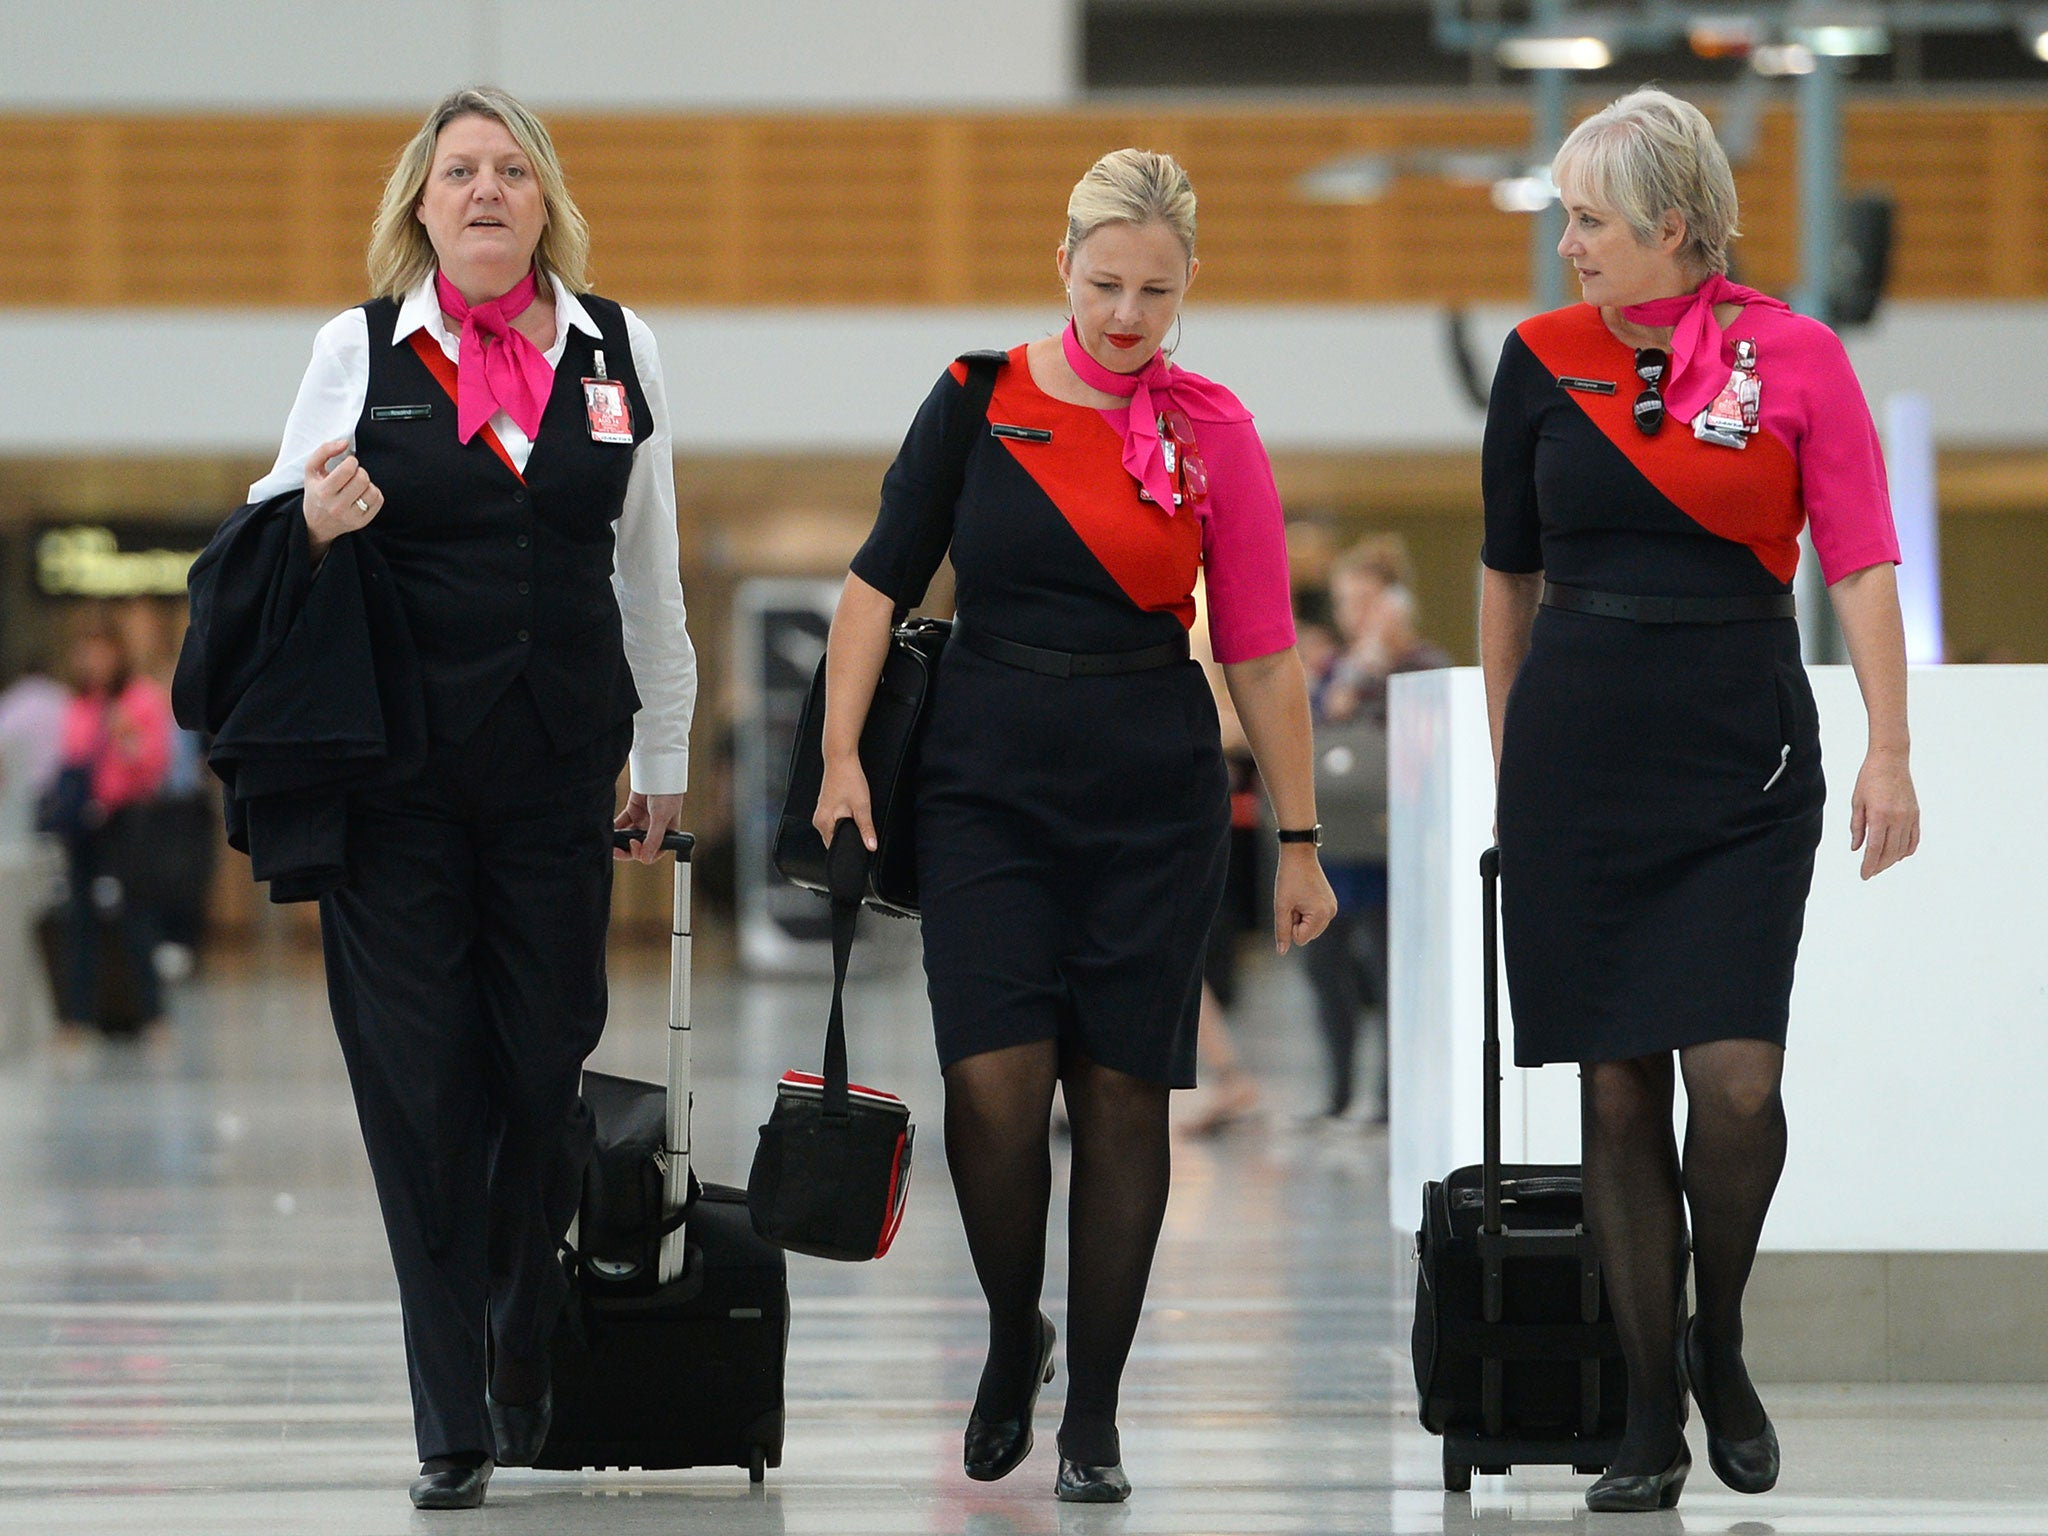 The Iconic Tailoring Of Flight Attendant Uniforms Has